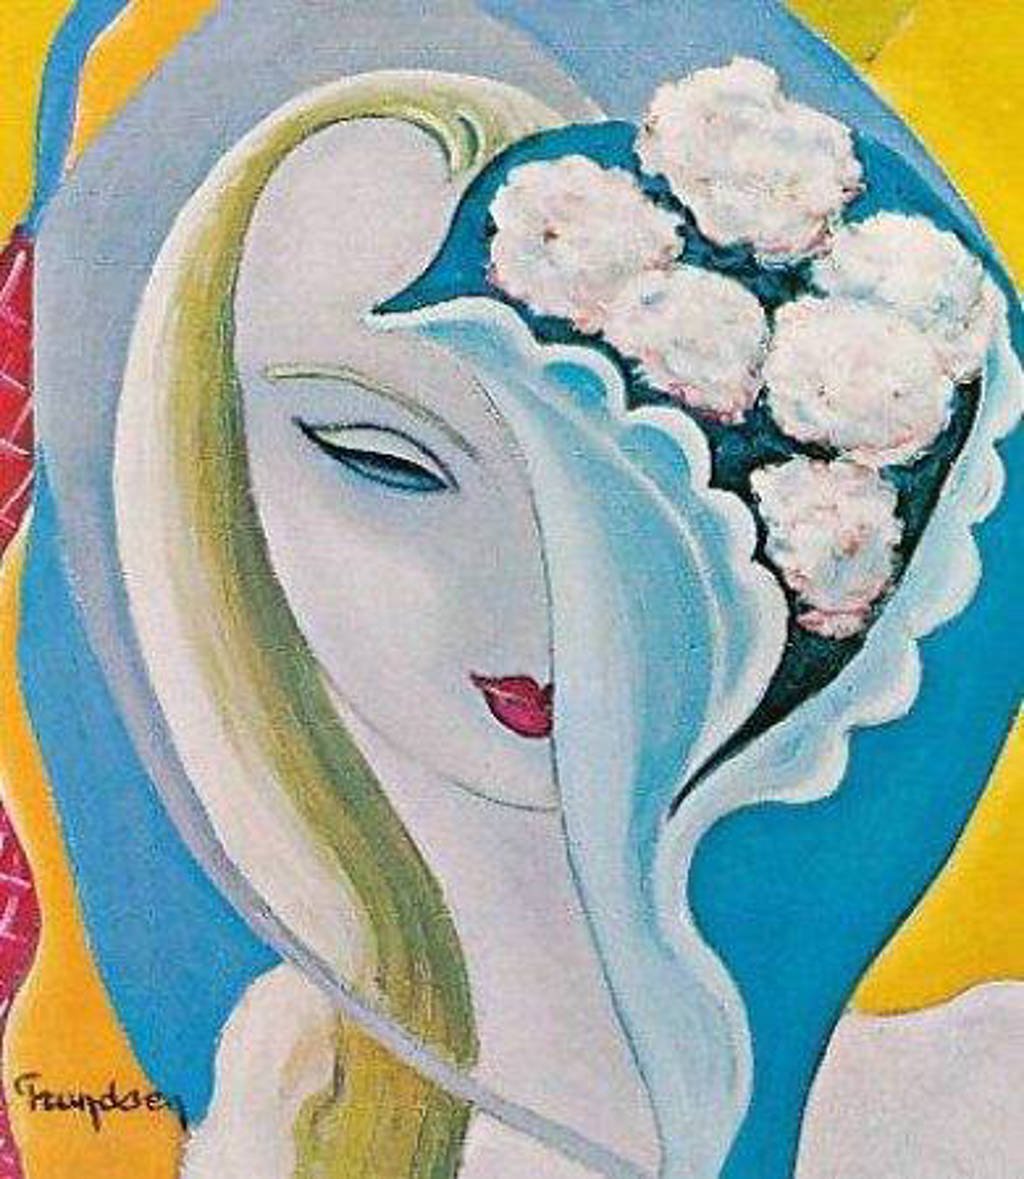 Derek And The Dominos - Layla And Other Assorted Love Song (Blu-ray)